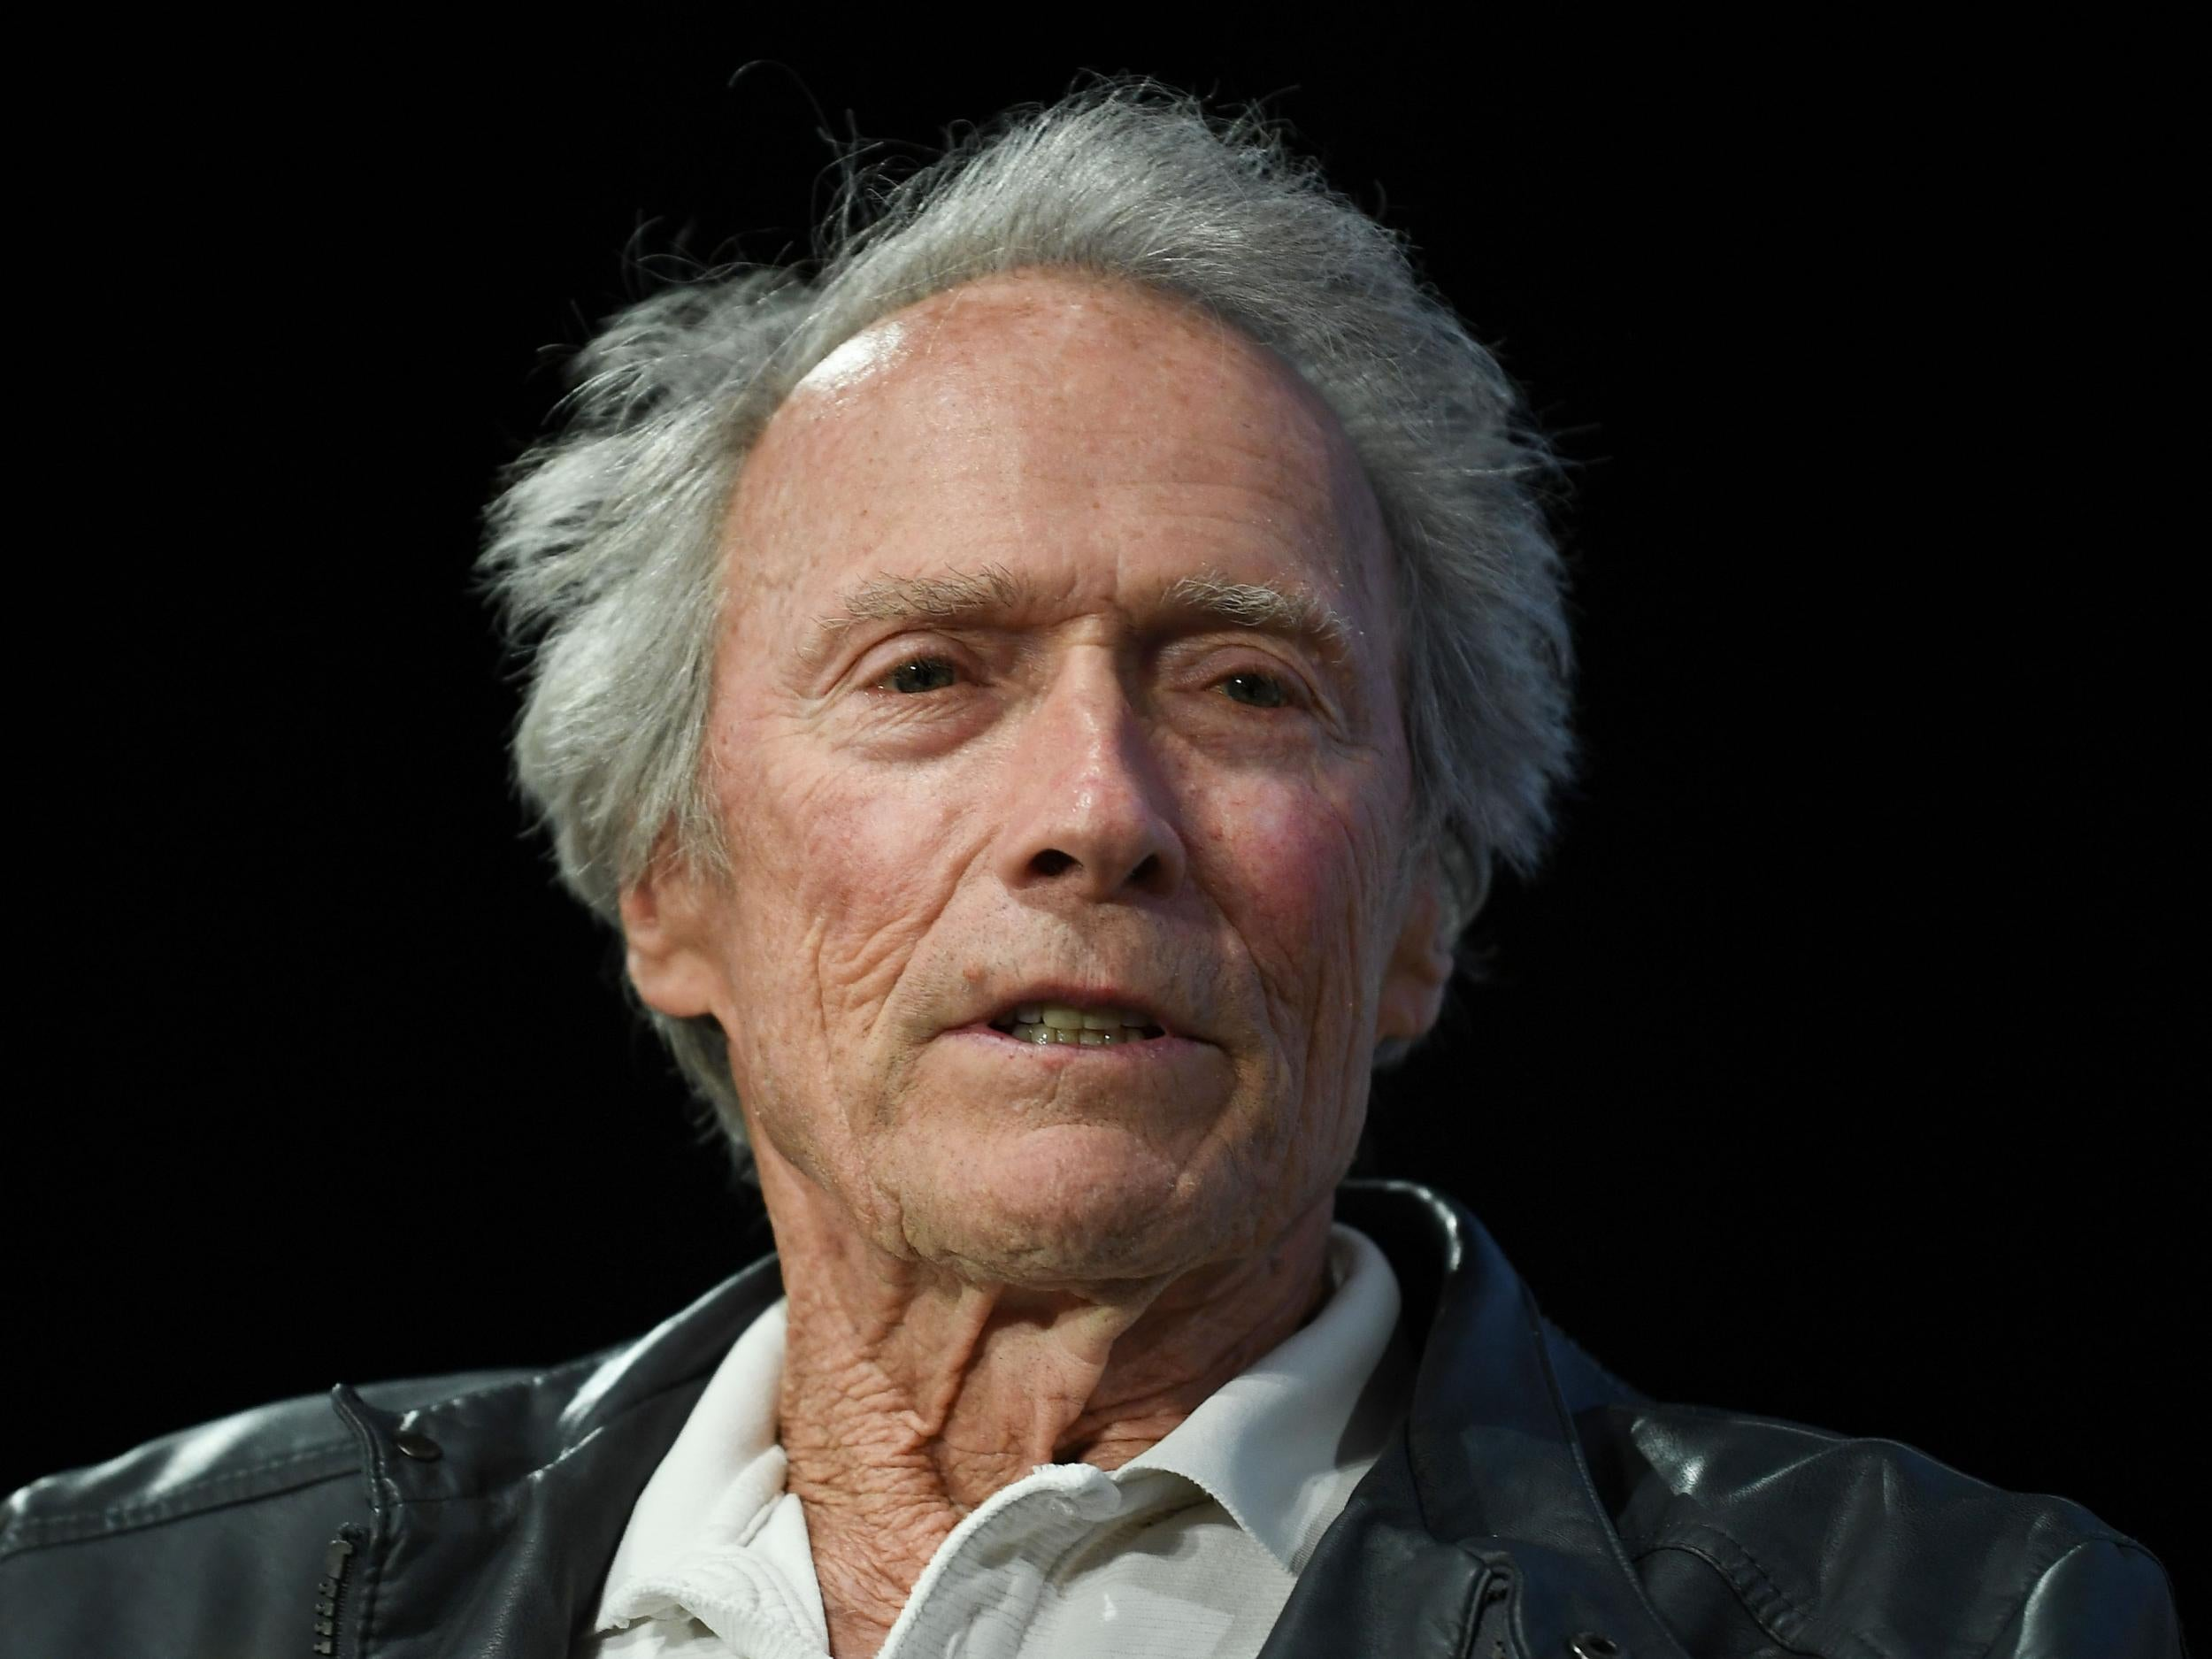 Clint Eastwood turns against Trump and backs Democrat for president